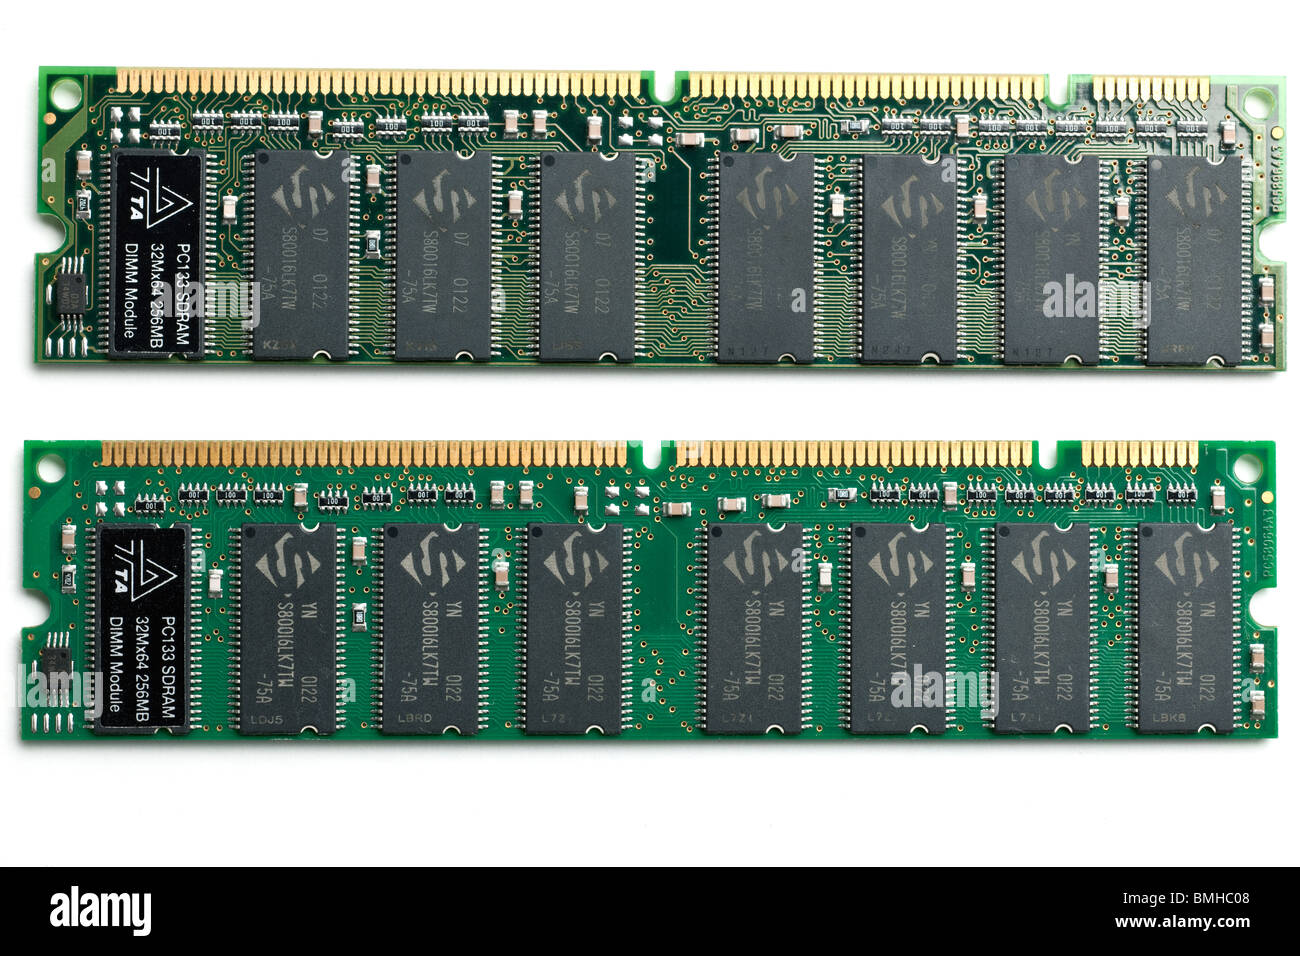 Two 256 mb pc133 sdram 32m*64 dimm computer memory modules - Stock Image